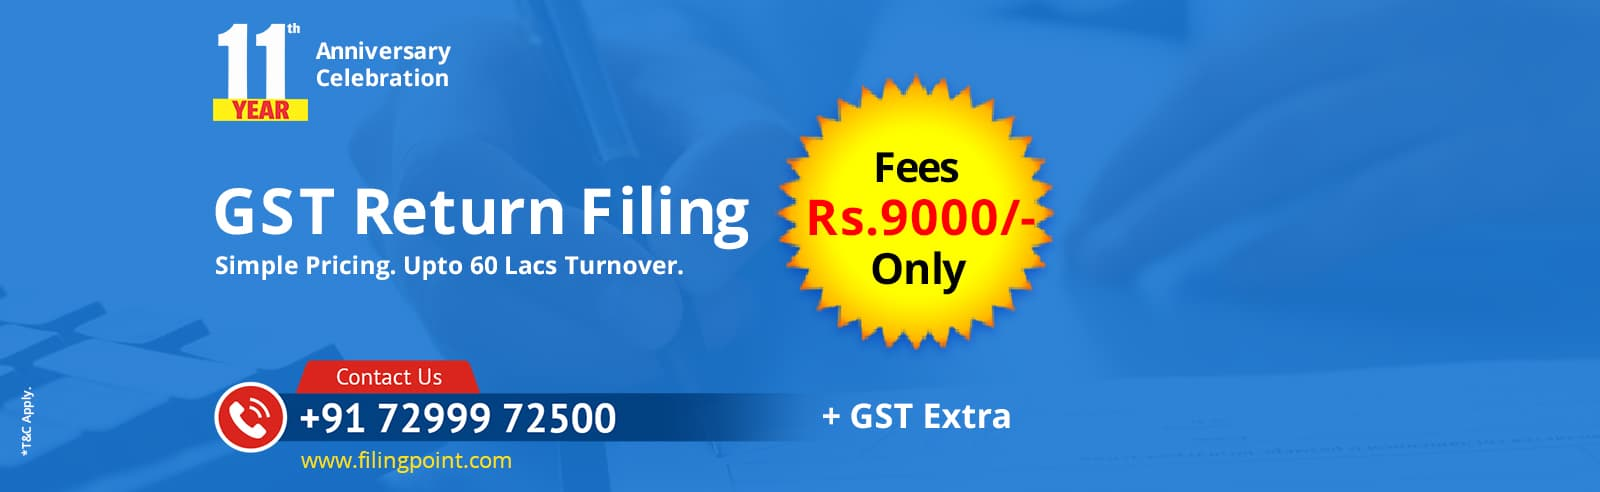 GST Filing Services Near Me Chennai Vasantham Colony First Street Anna Nagar West Ews Colony